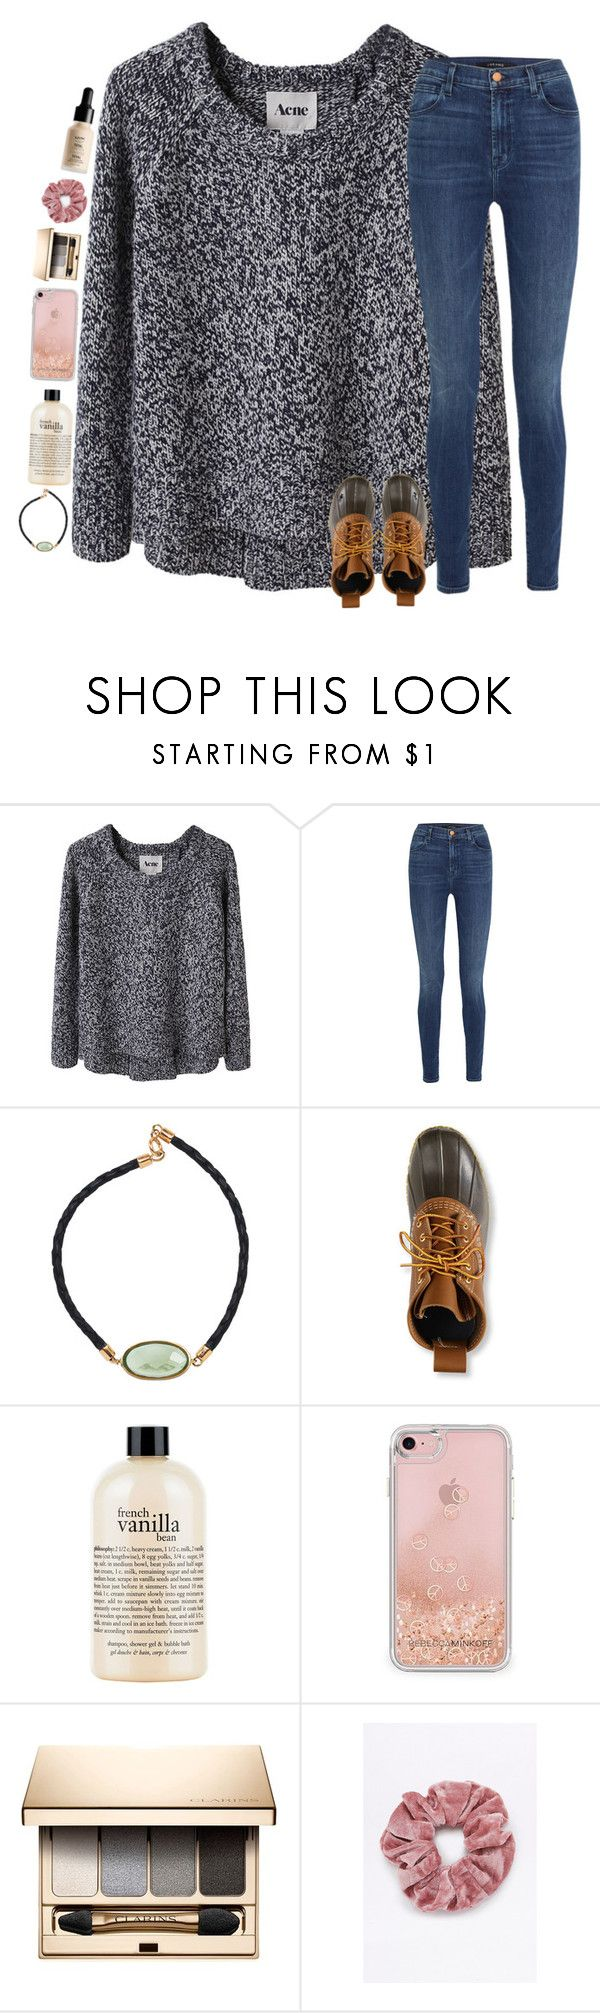 """sweater weather "" by classyandsassyabby ❤ liked on Polyvore featuring Acne Studios, J Brand, Plukka, L.L.Bean, philosophy, Rebecca Minkoff, Clarins and NYX"